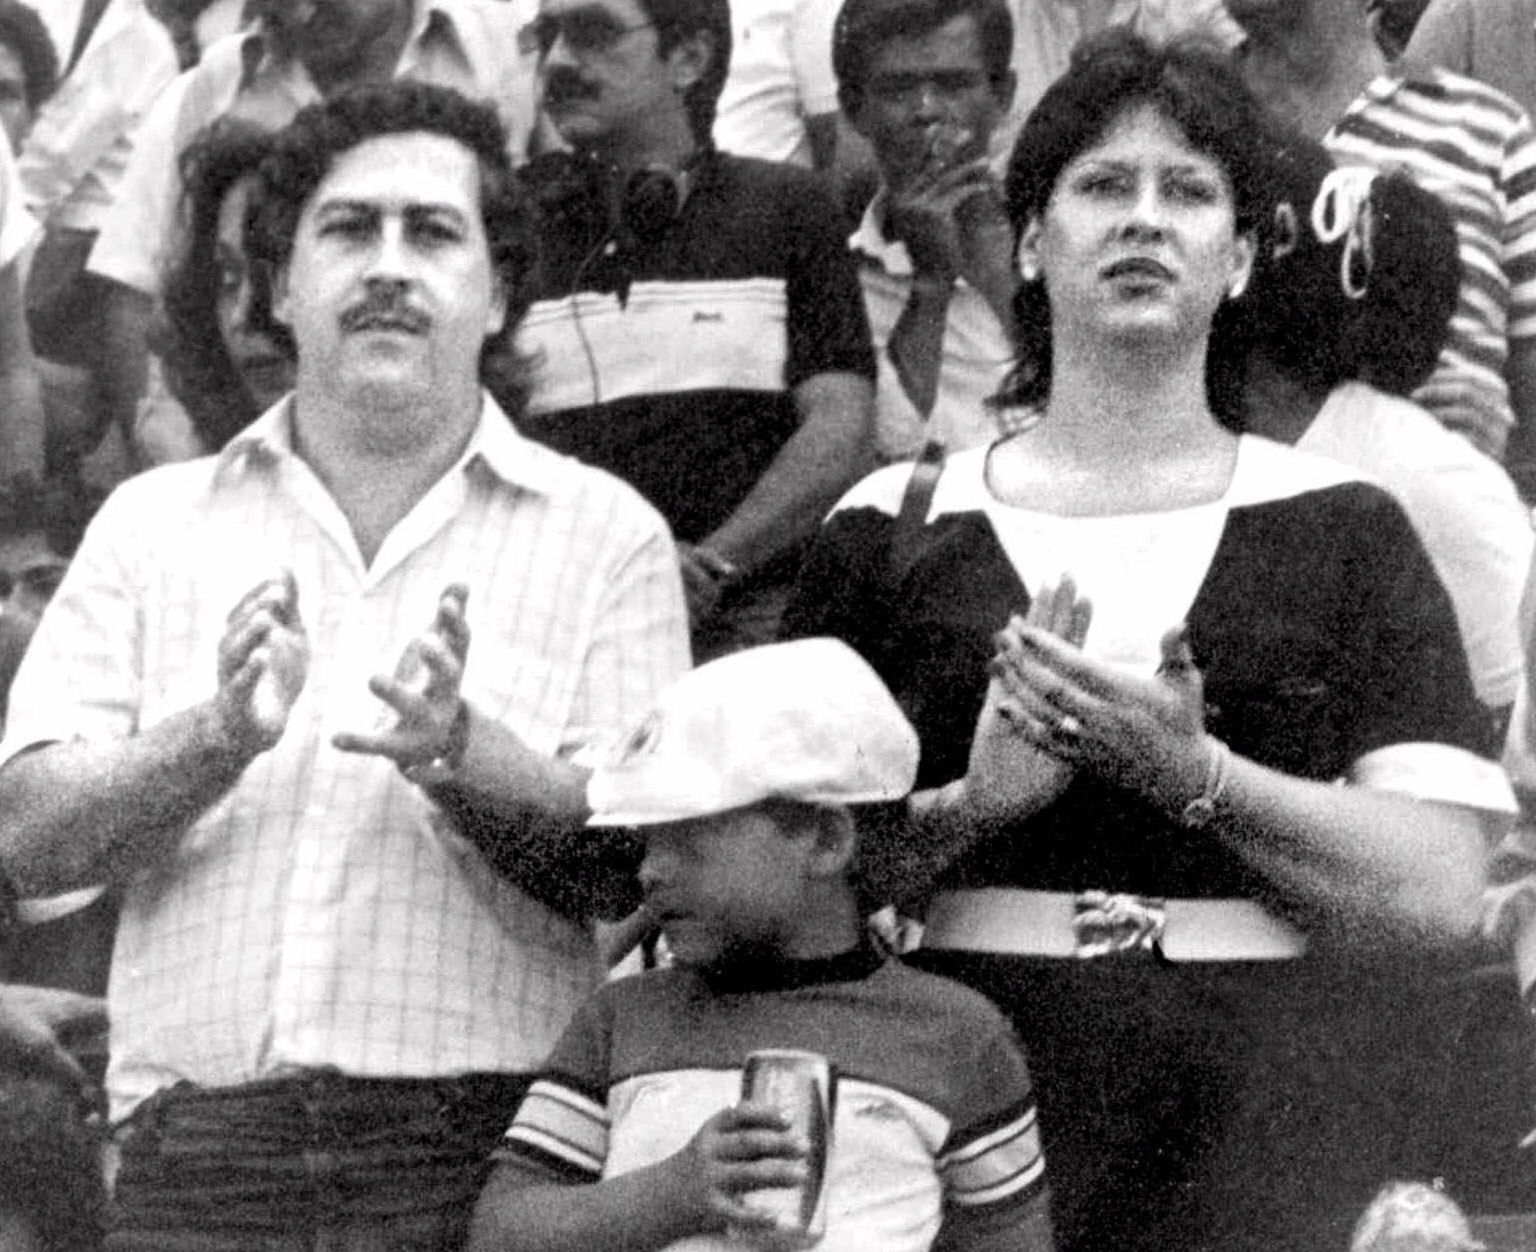 FILE - In this undated file photo, the late Pablo Escobar, former boss of the Medellin drug cartel, his wife Maria Henao and their son Juan Pablo, attend a soccer match in Bogota, Colombia.